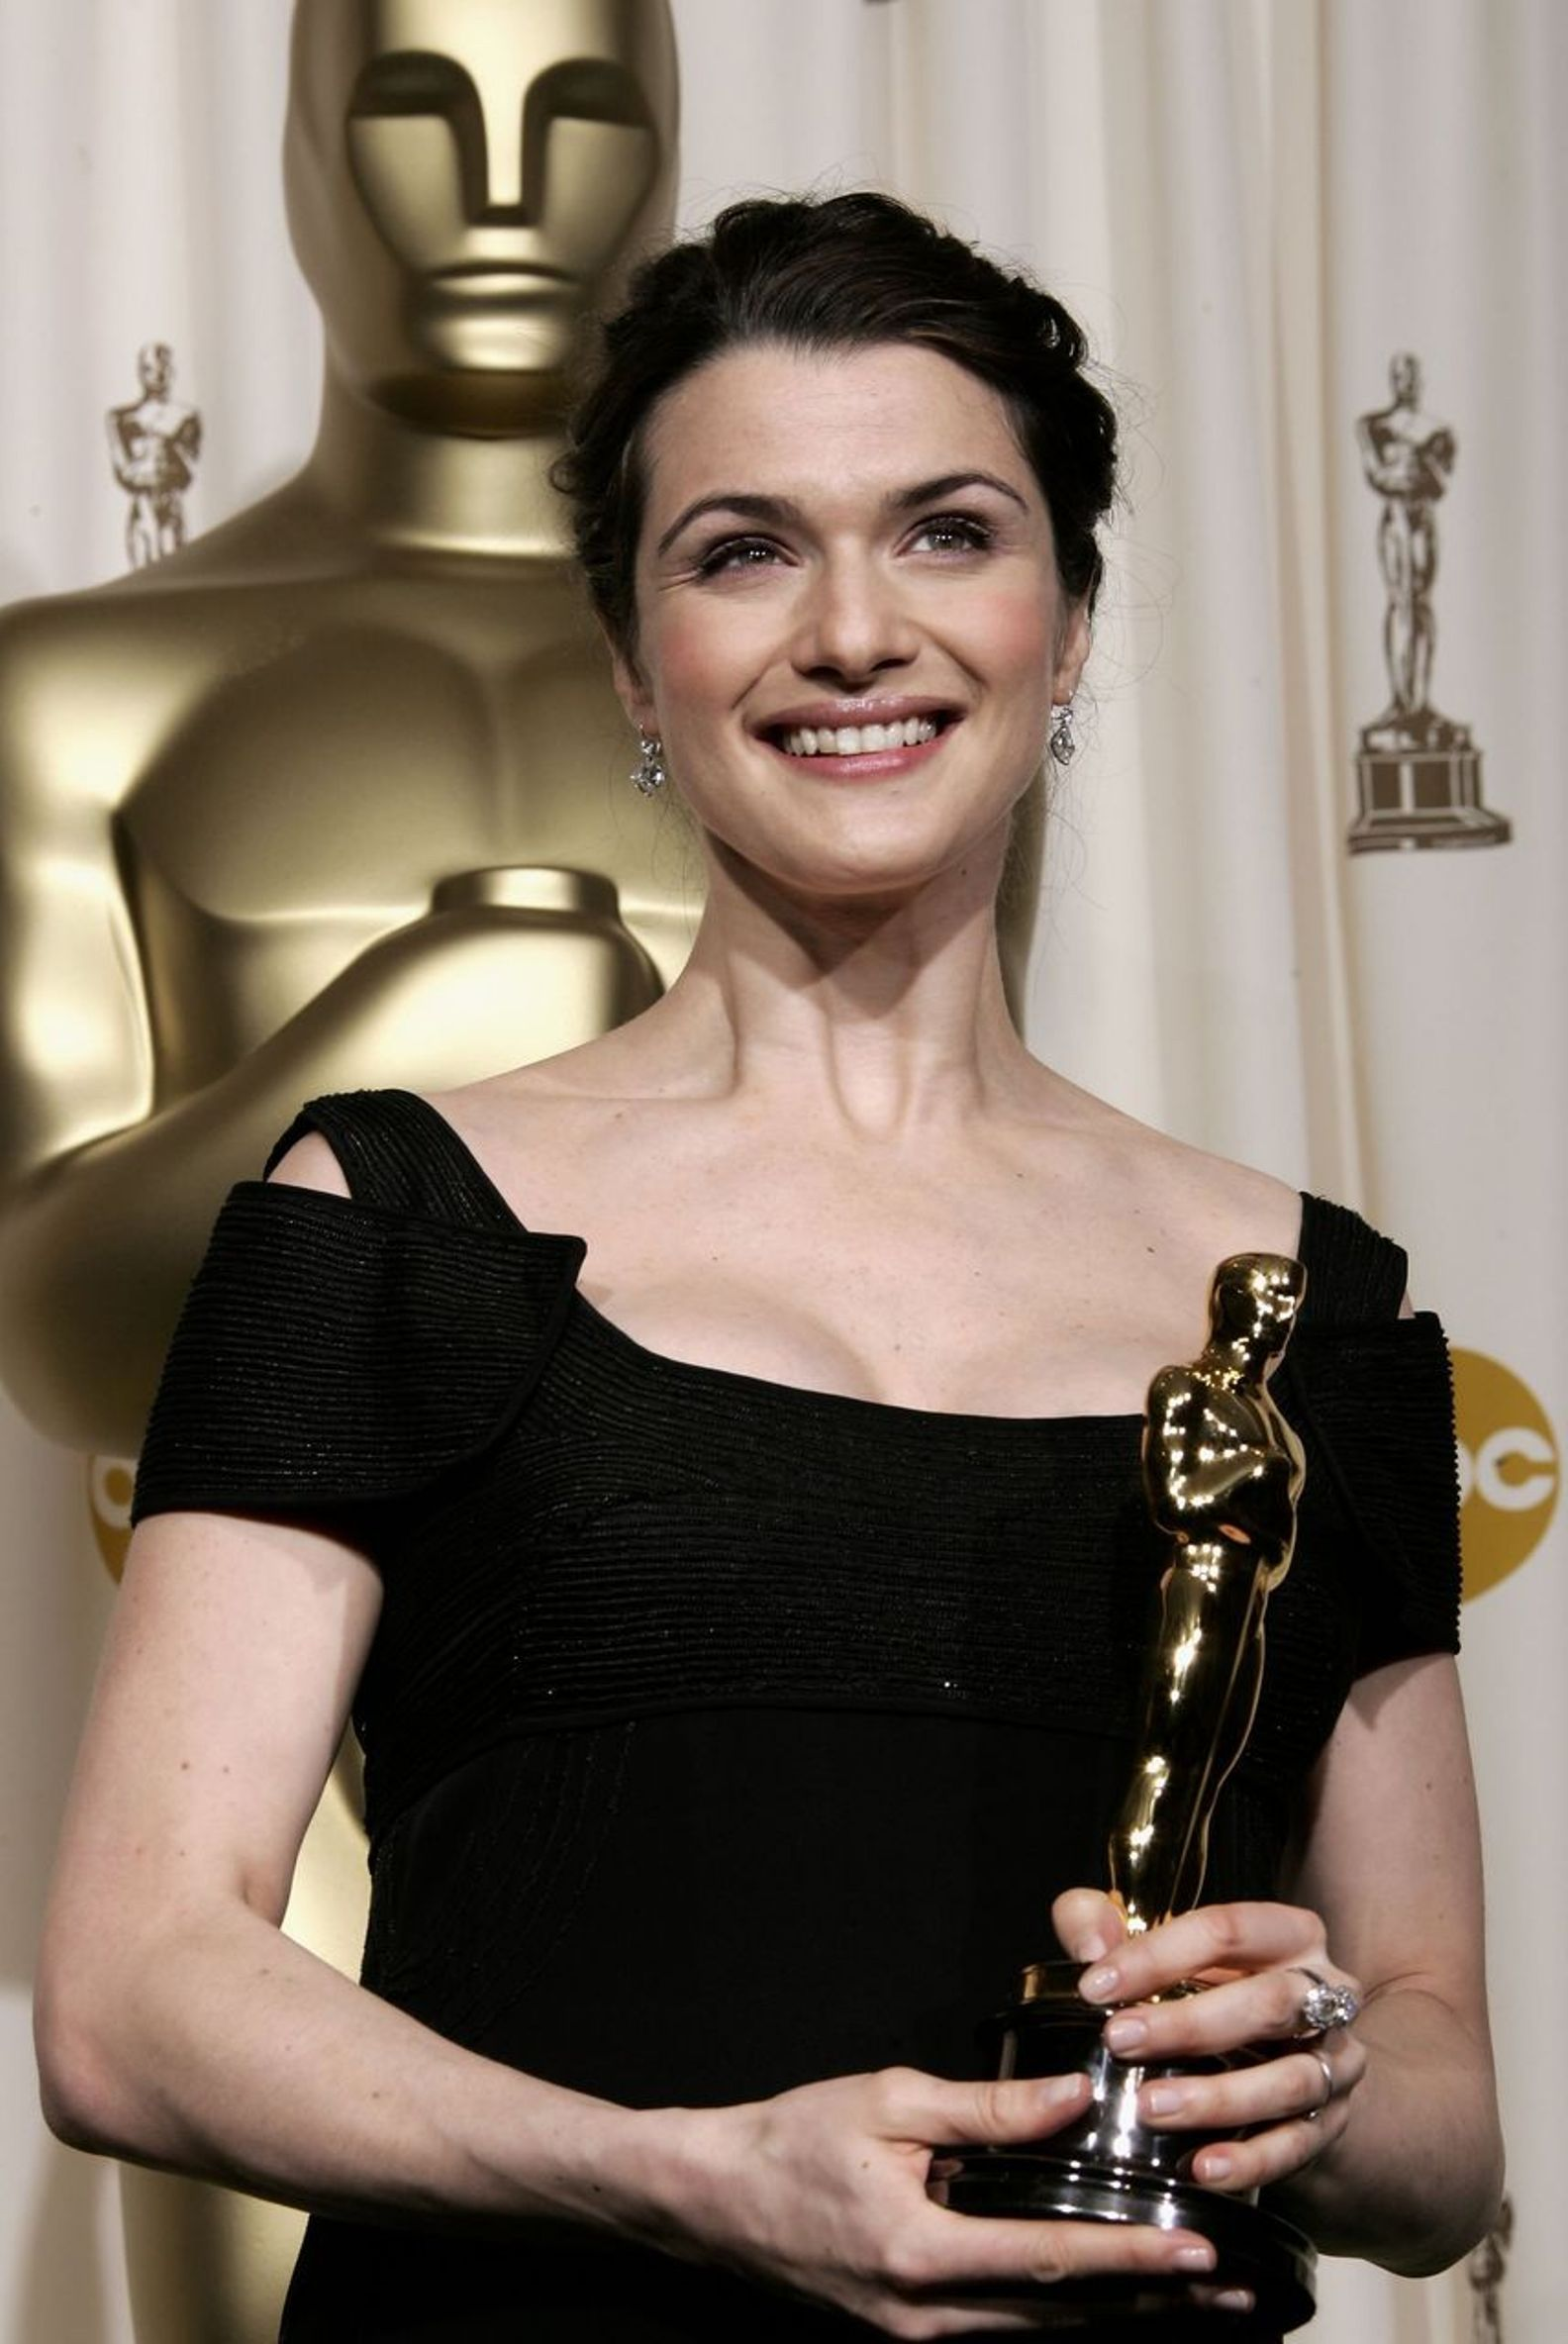 10d2840c379bdf0565419d30bf541700 - Actress Who Won An Oscar For The Constant Gardener